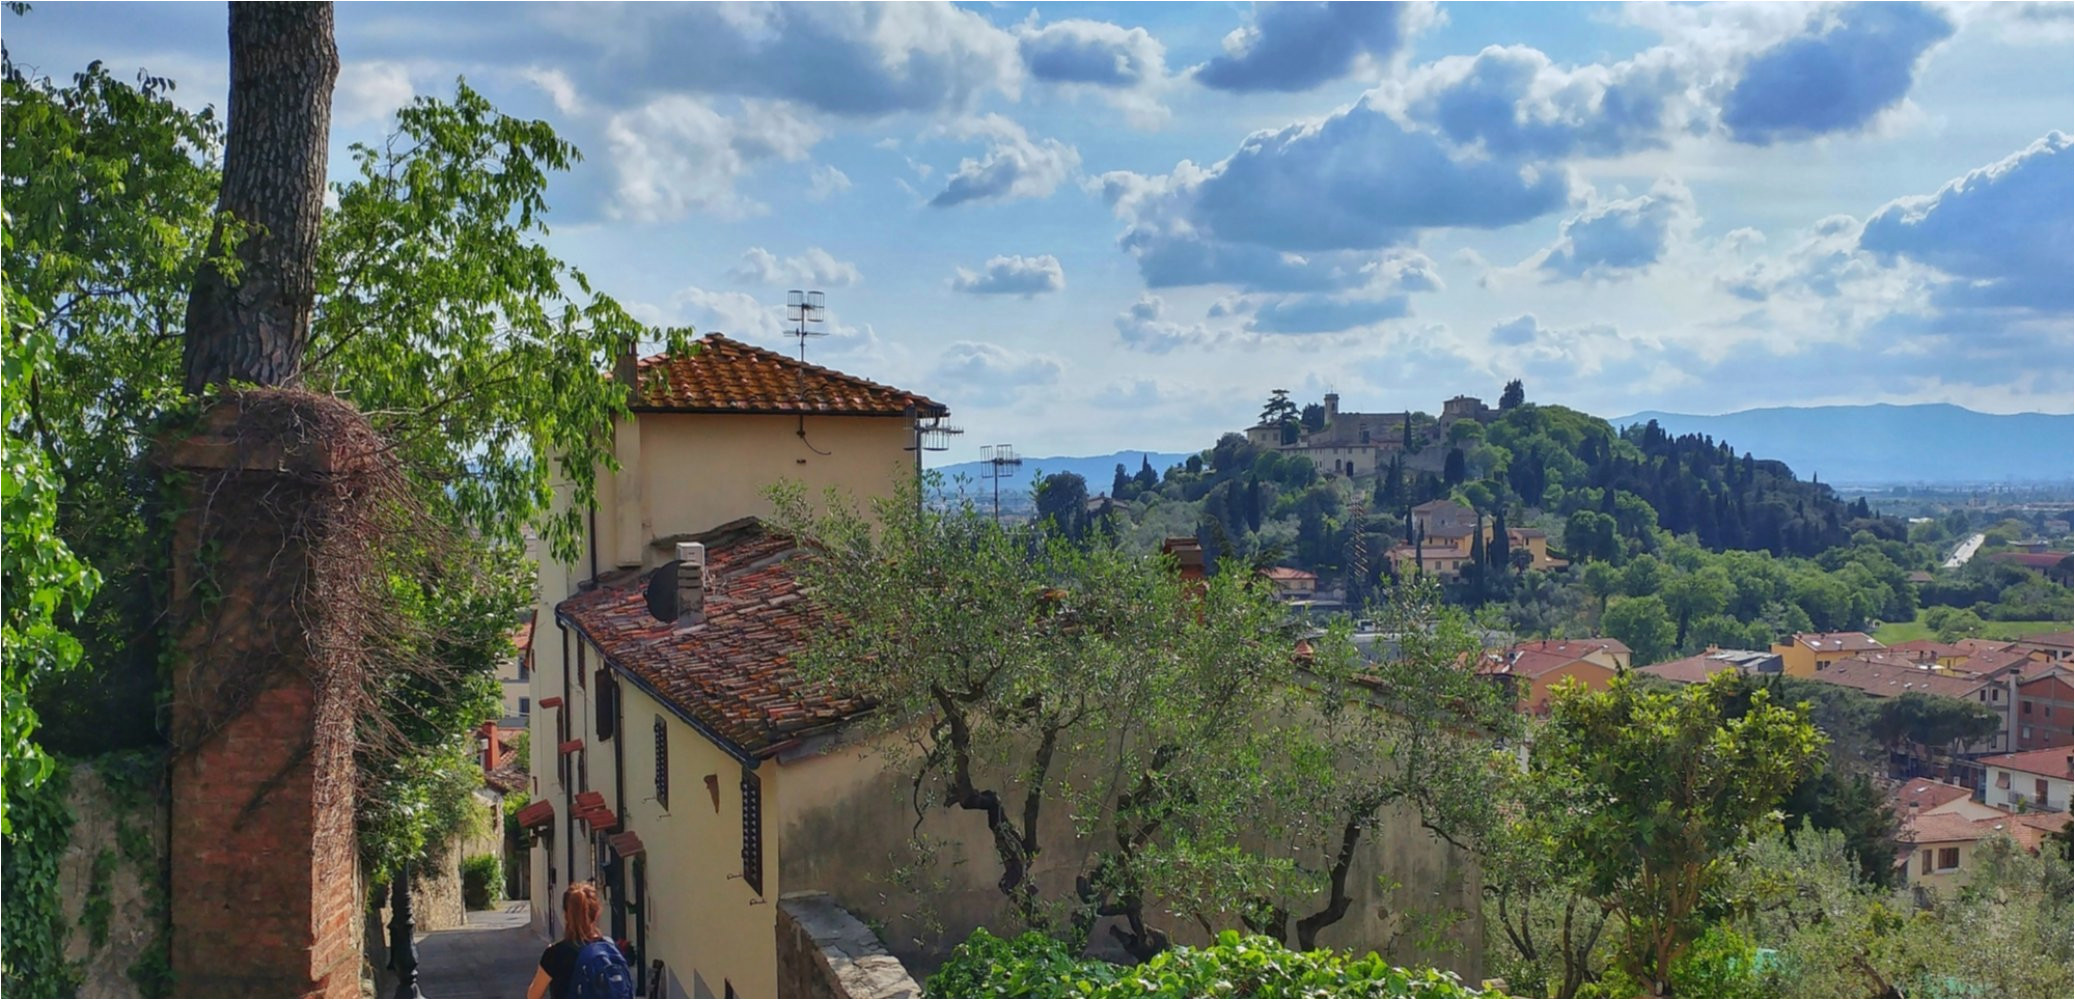 10 small towns near florence visit tuscany